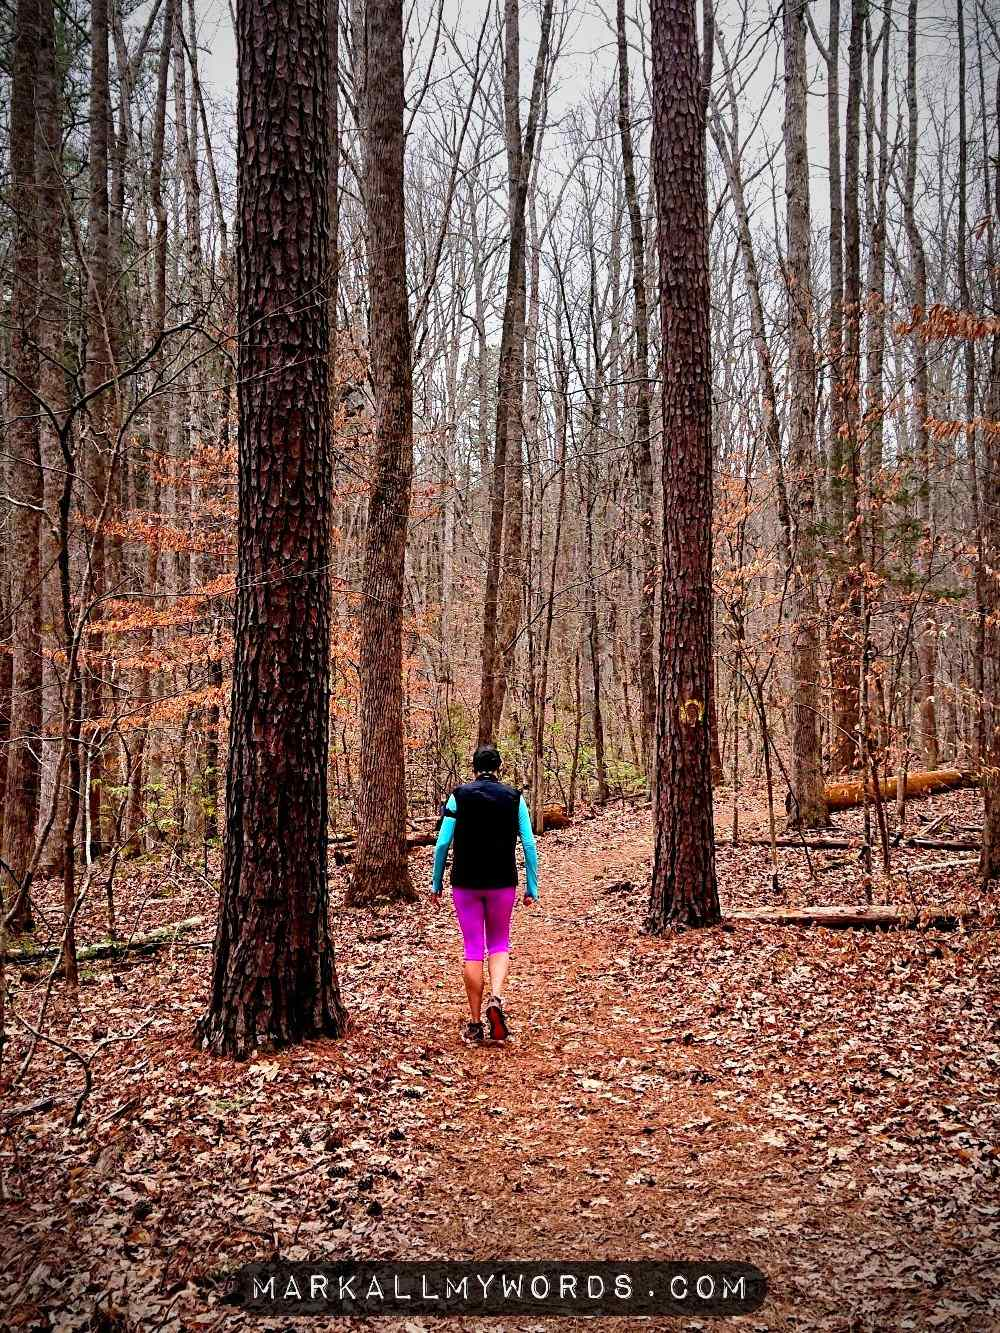 Woman with pink pants walking through pine trees